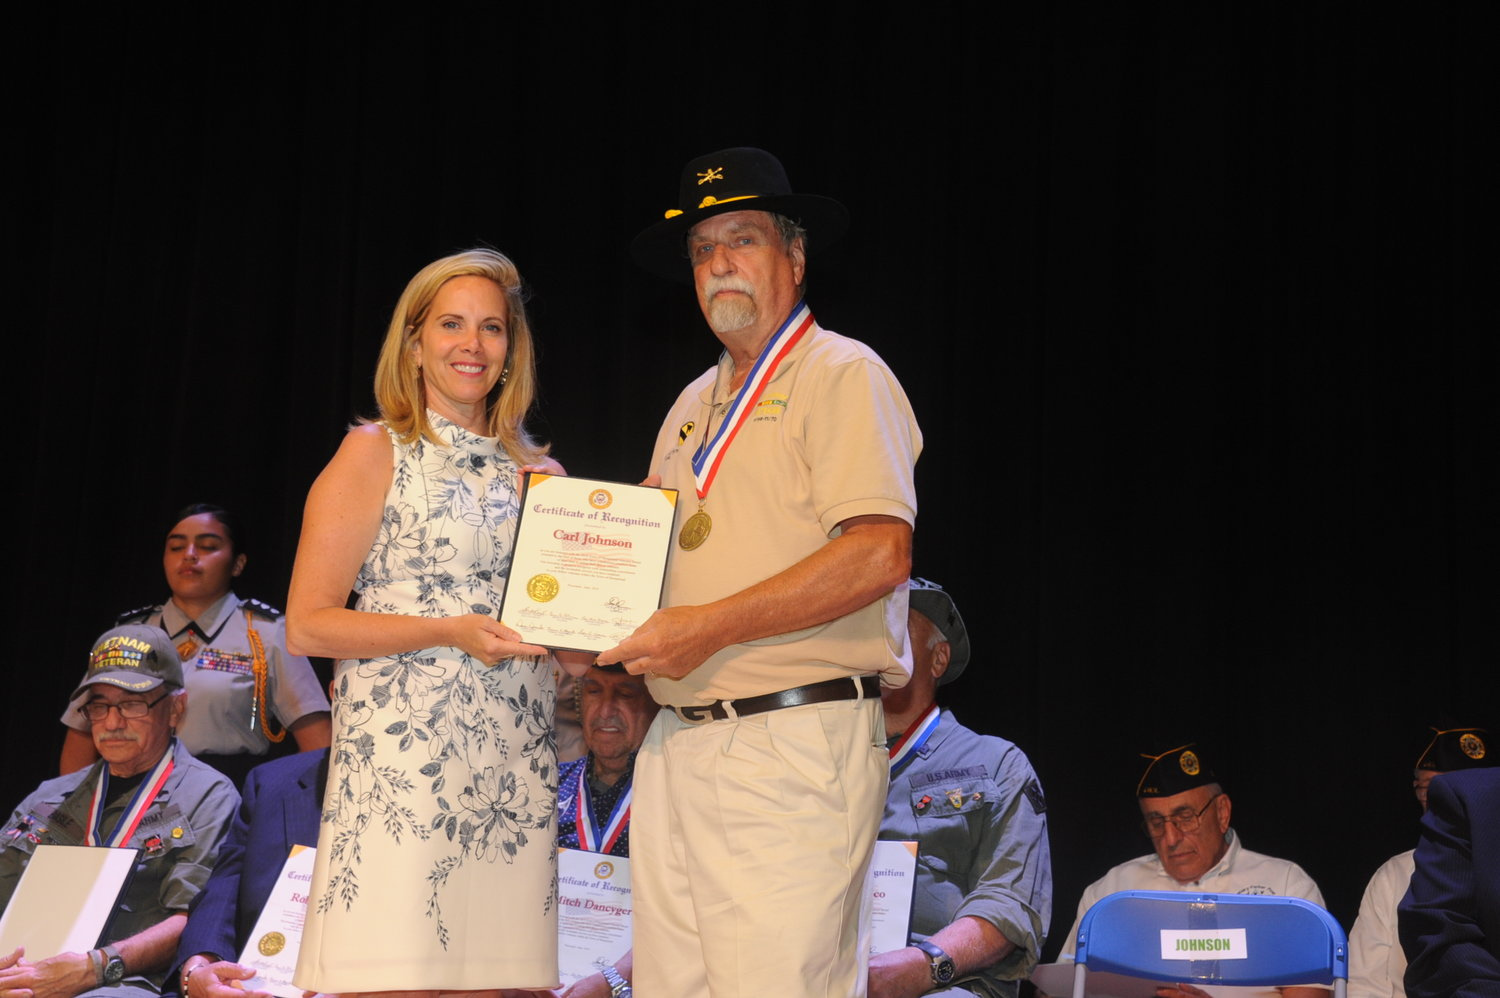 West Hempstead resident and Vietnam veteran Carl Johnson was honored with the Veterans Medal by Town Supervisor Laura Gillen on June 29.